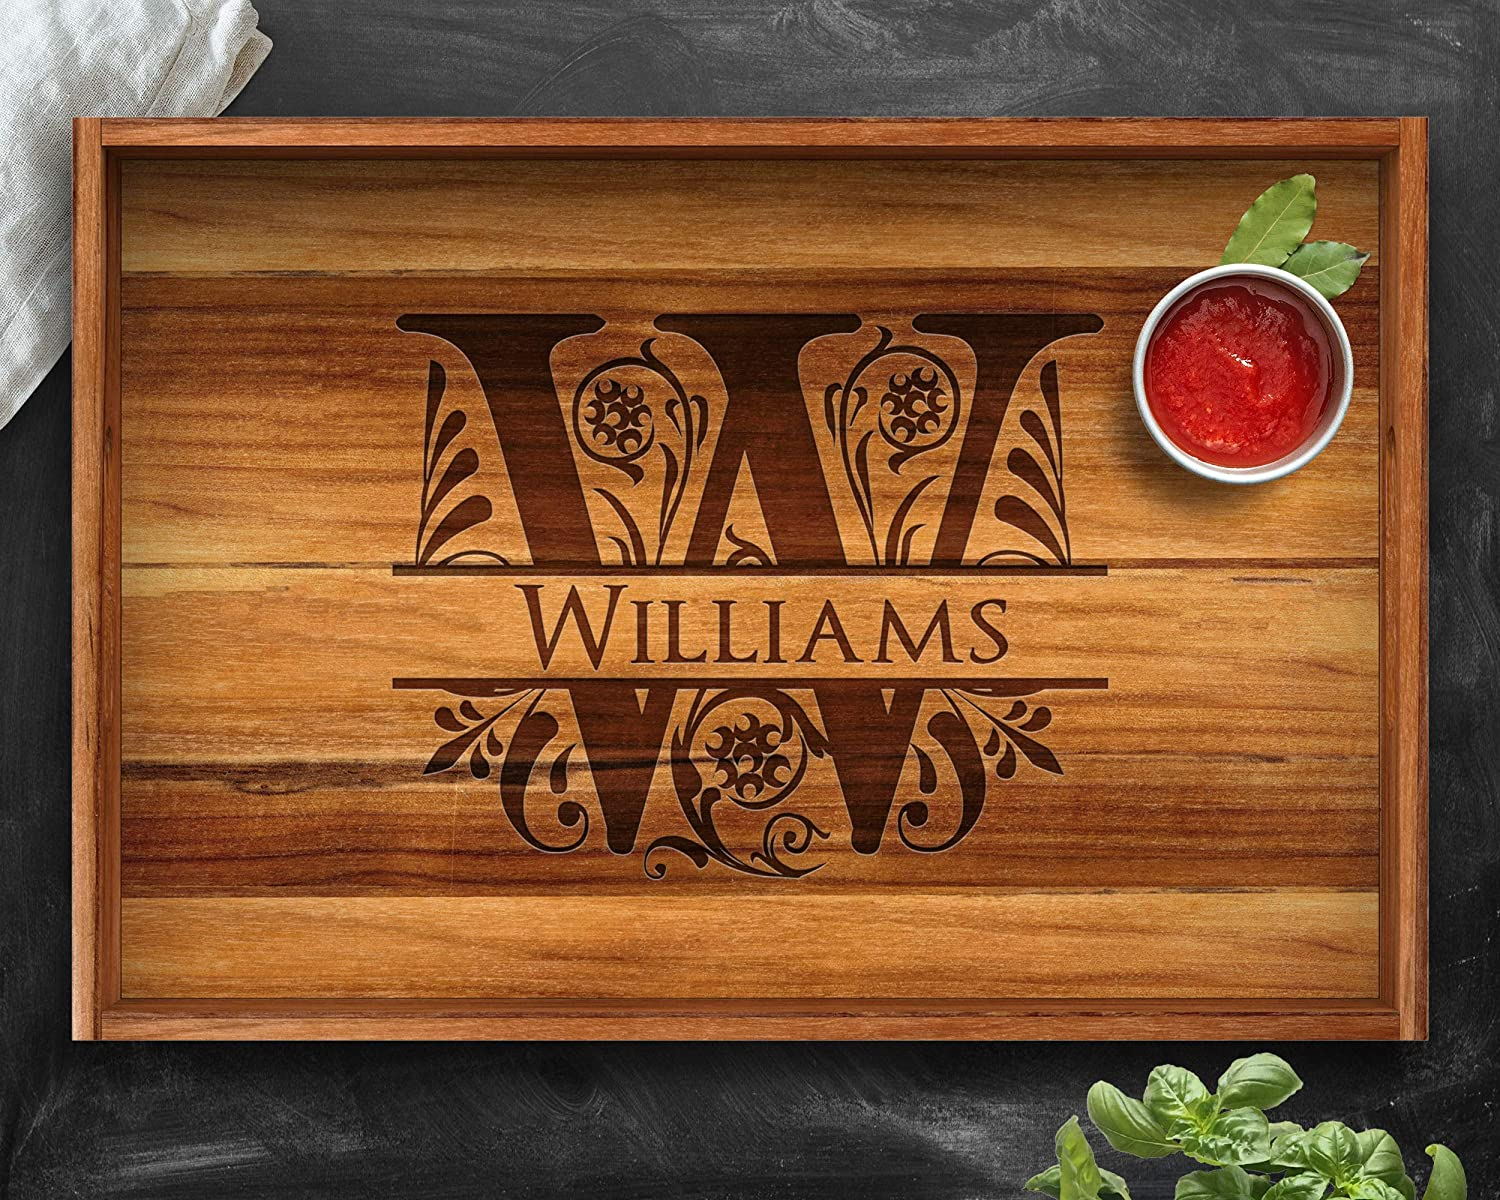 Personalized Christmas Gifts Wedding Gift Split Letter Custom Tray Housewarming Gift Engagement Tray Wood Tray Teak Tray Engraved Tray Anniversary Gift Personalized Tray